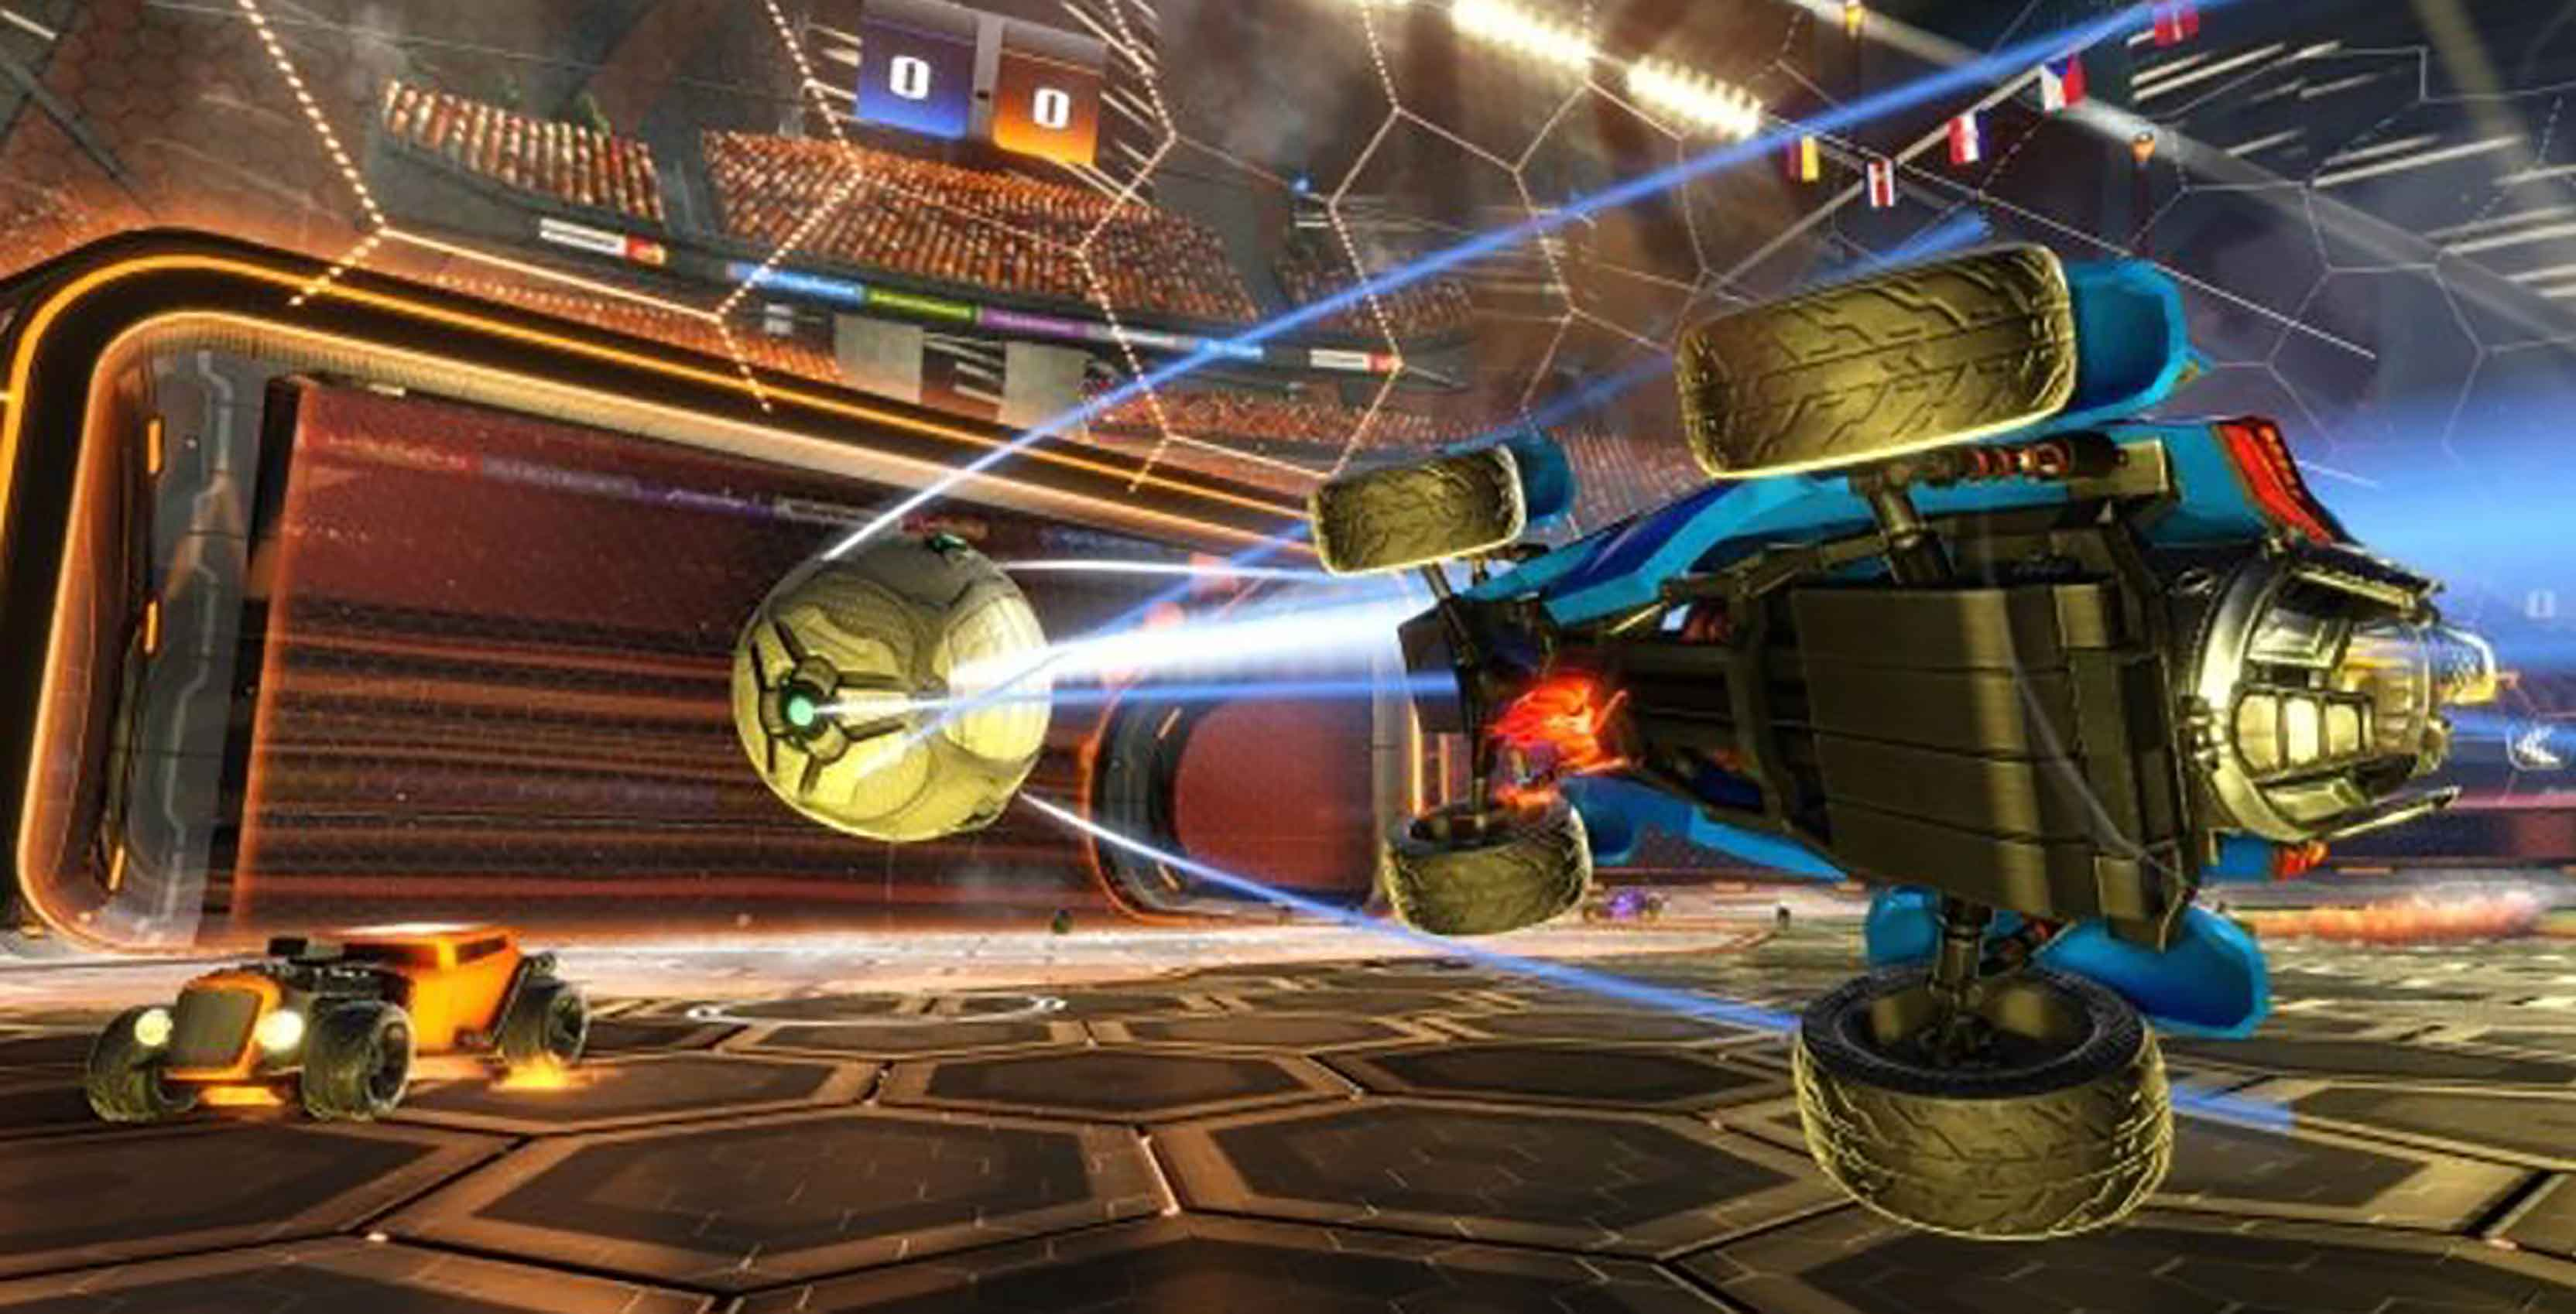 Psyonix wants the Nintendo Switch version of Rocket League